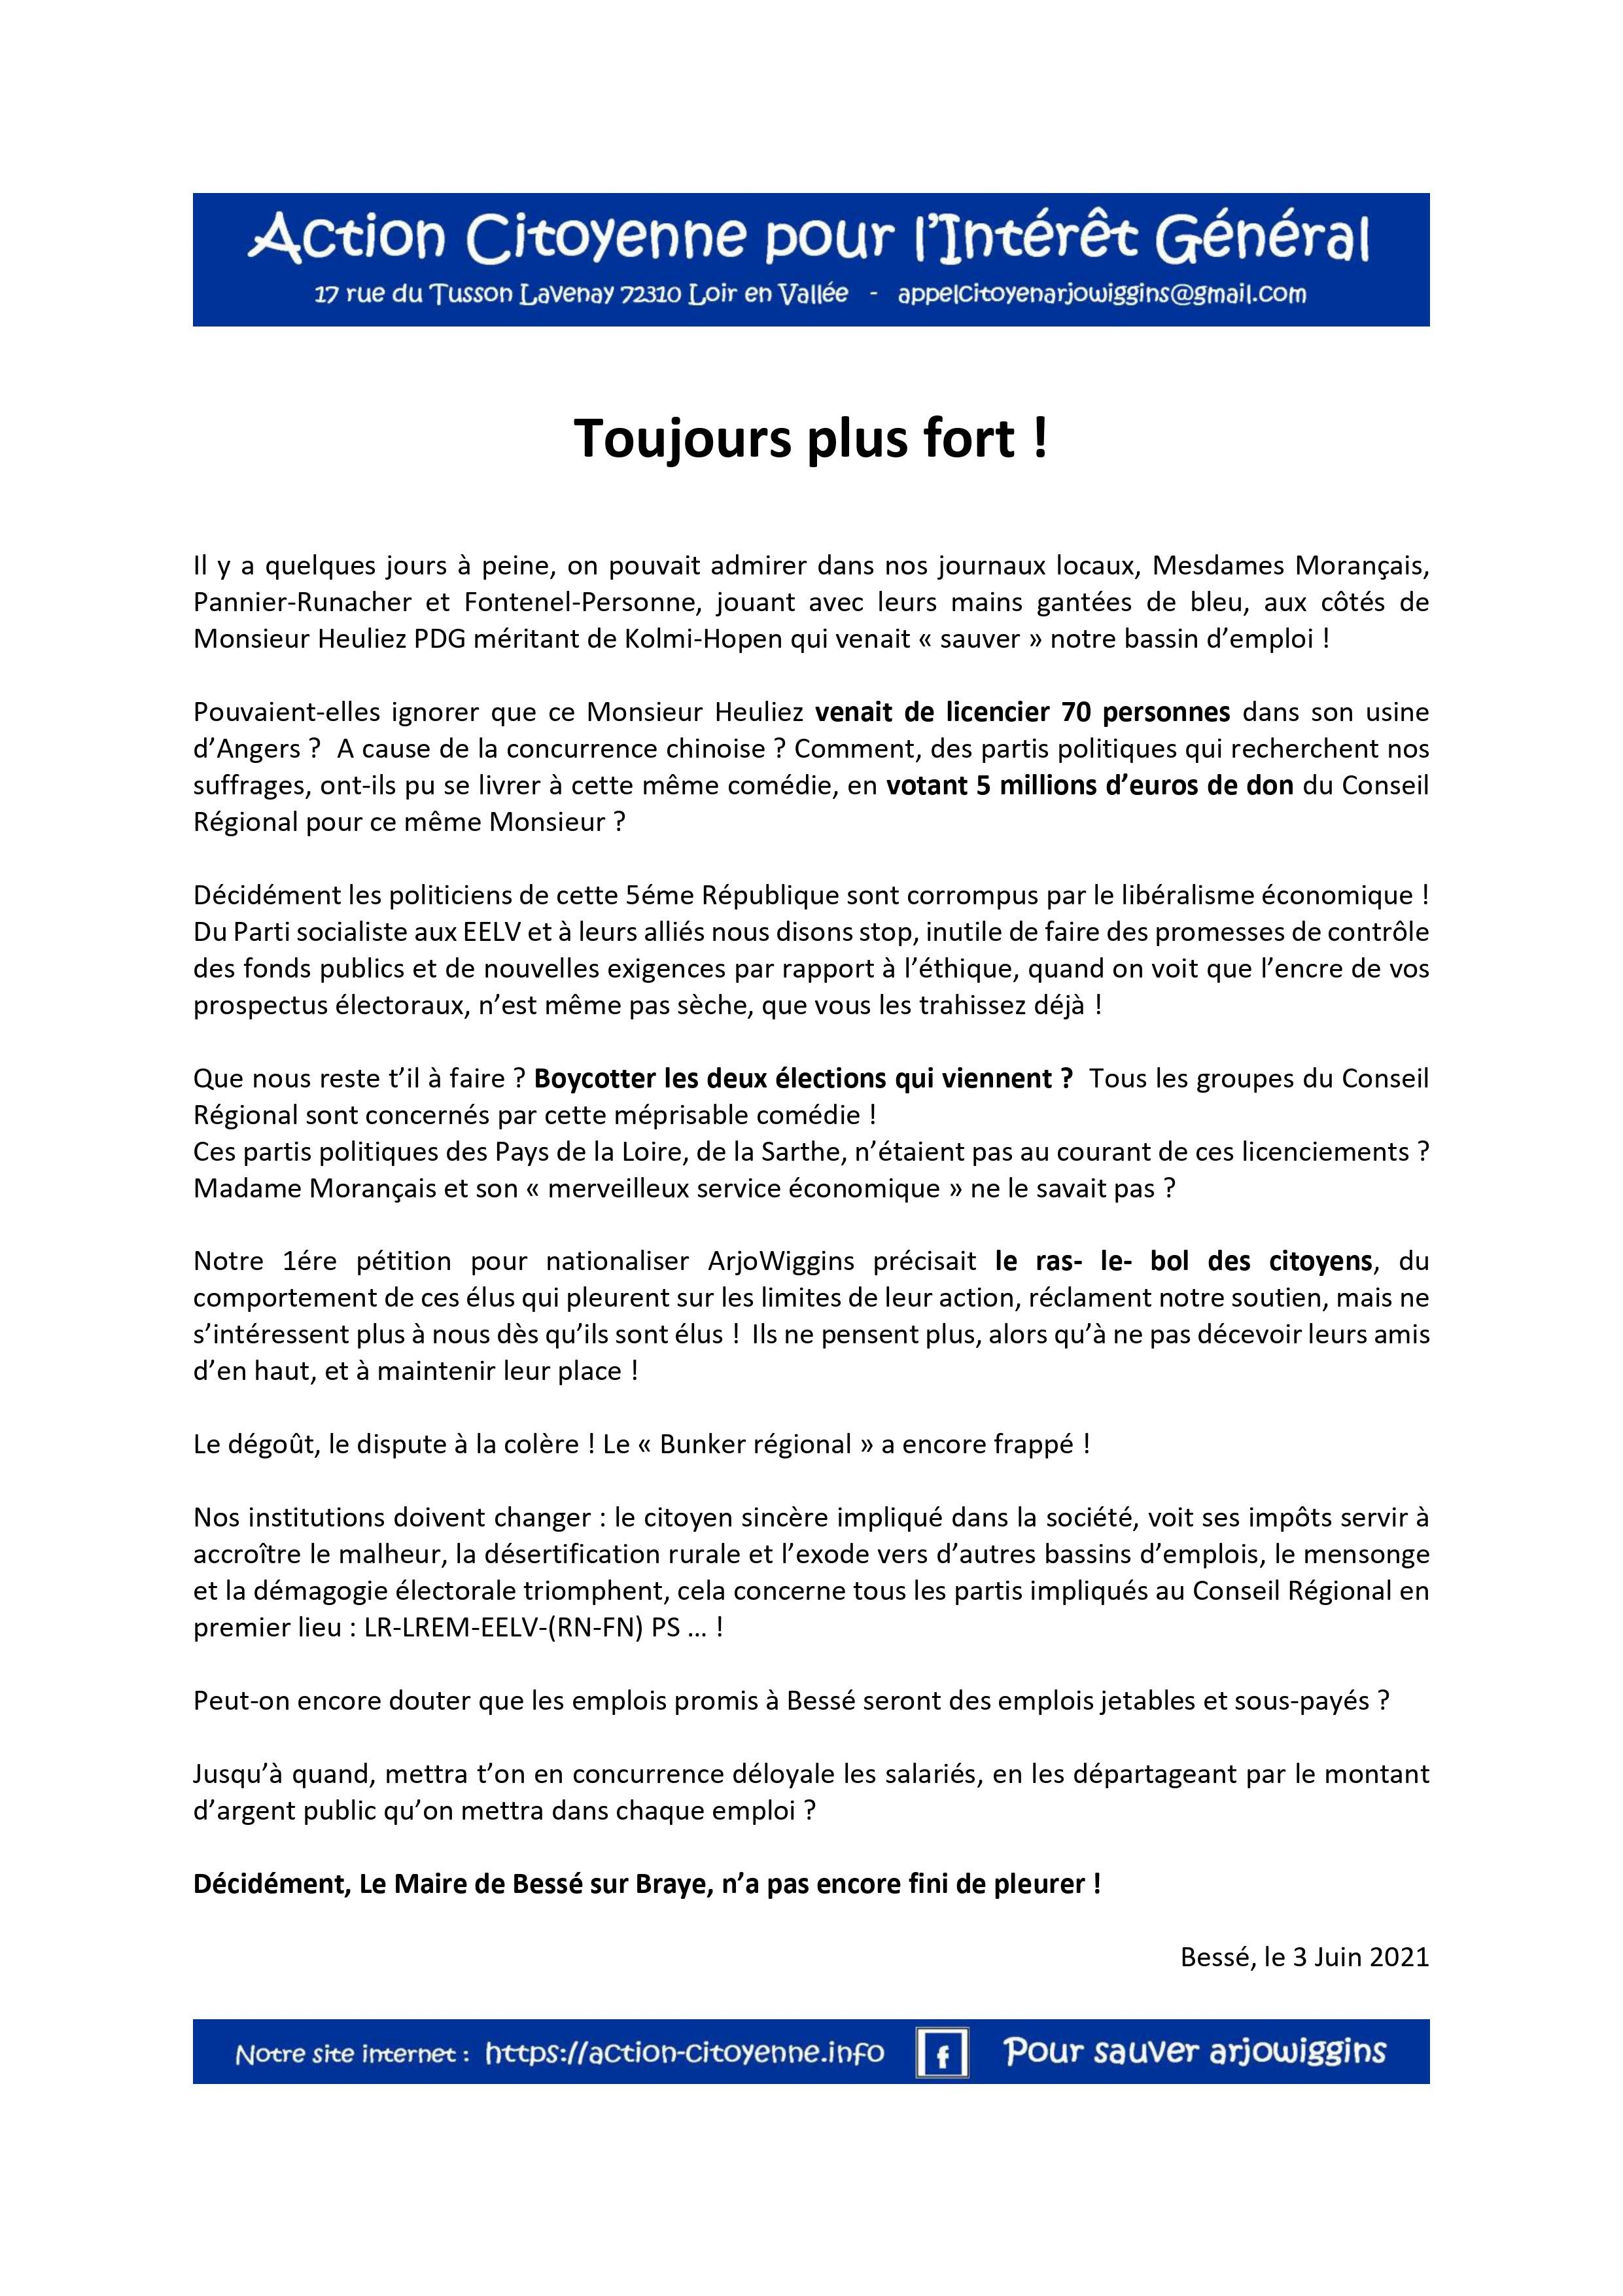 Toujours plus fort 030621